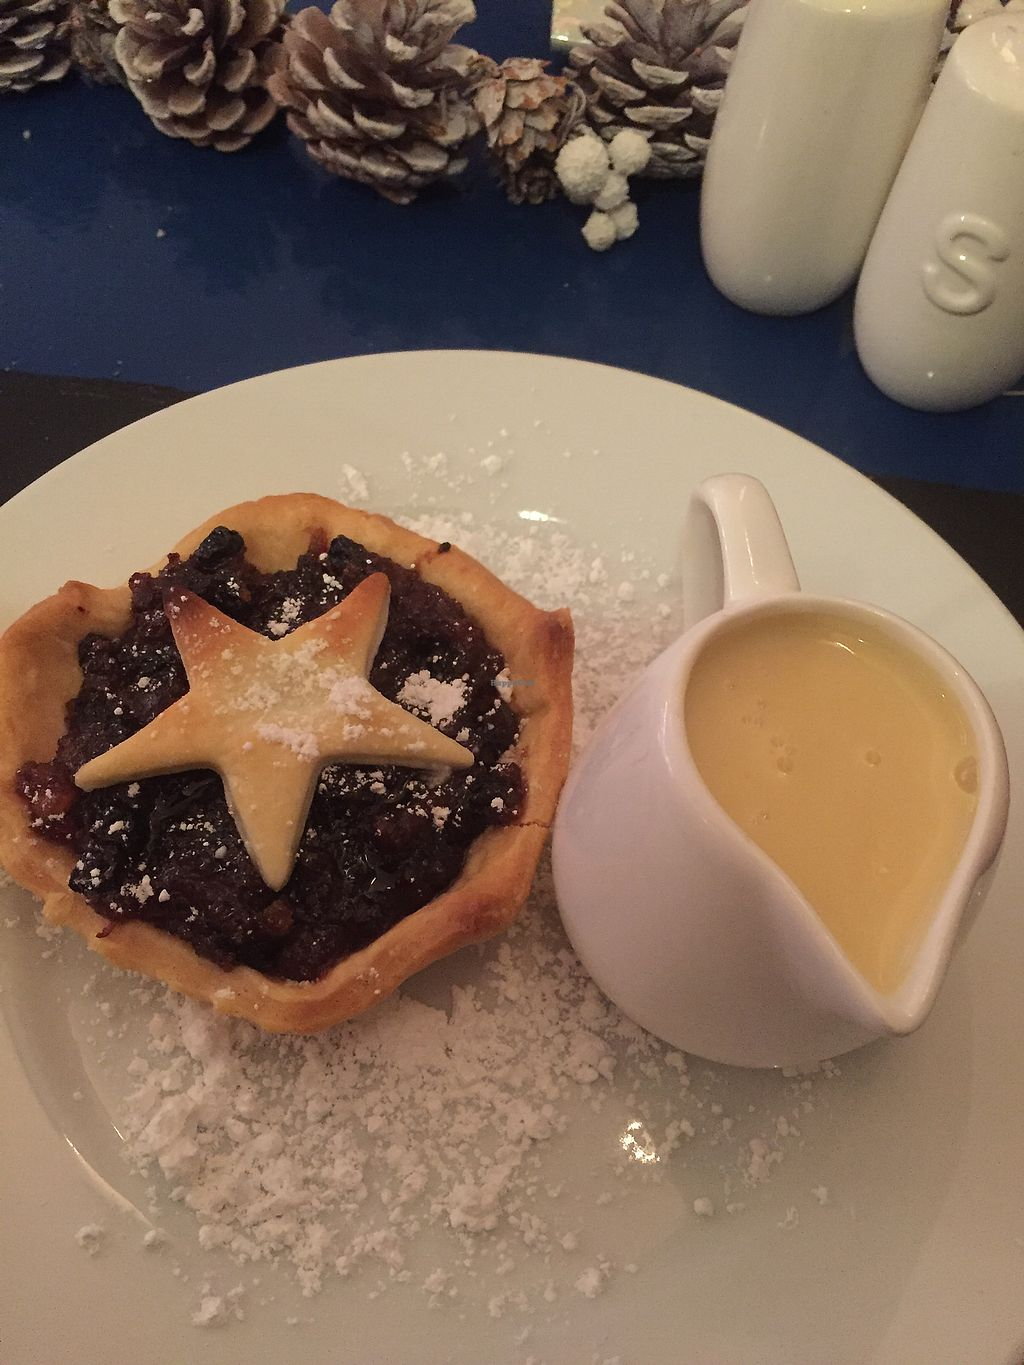 """Photo of Diamond Lil's  by <a href=""""/members/profile/VeganSnippets"""">VeganSnippets</a> <br/>Vegan mince pie and custard sorry forgot to photograpgh the rest!!! I just wanted to eat it  <br/> December 21, 2017  - <a href='/contact/abuse/image/94904/337883'>Report</a>"""